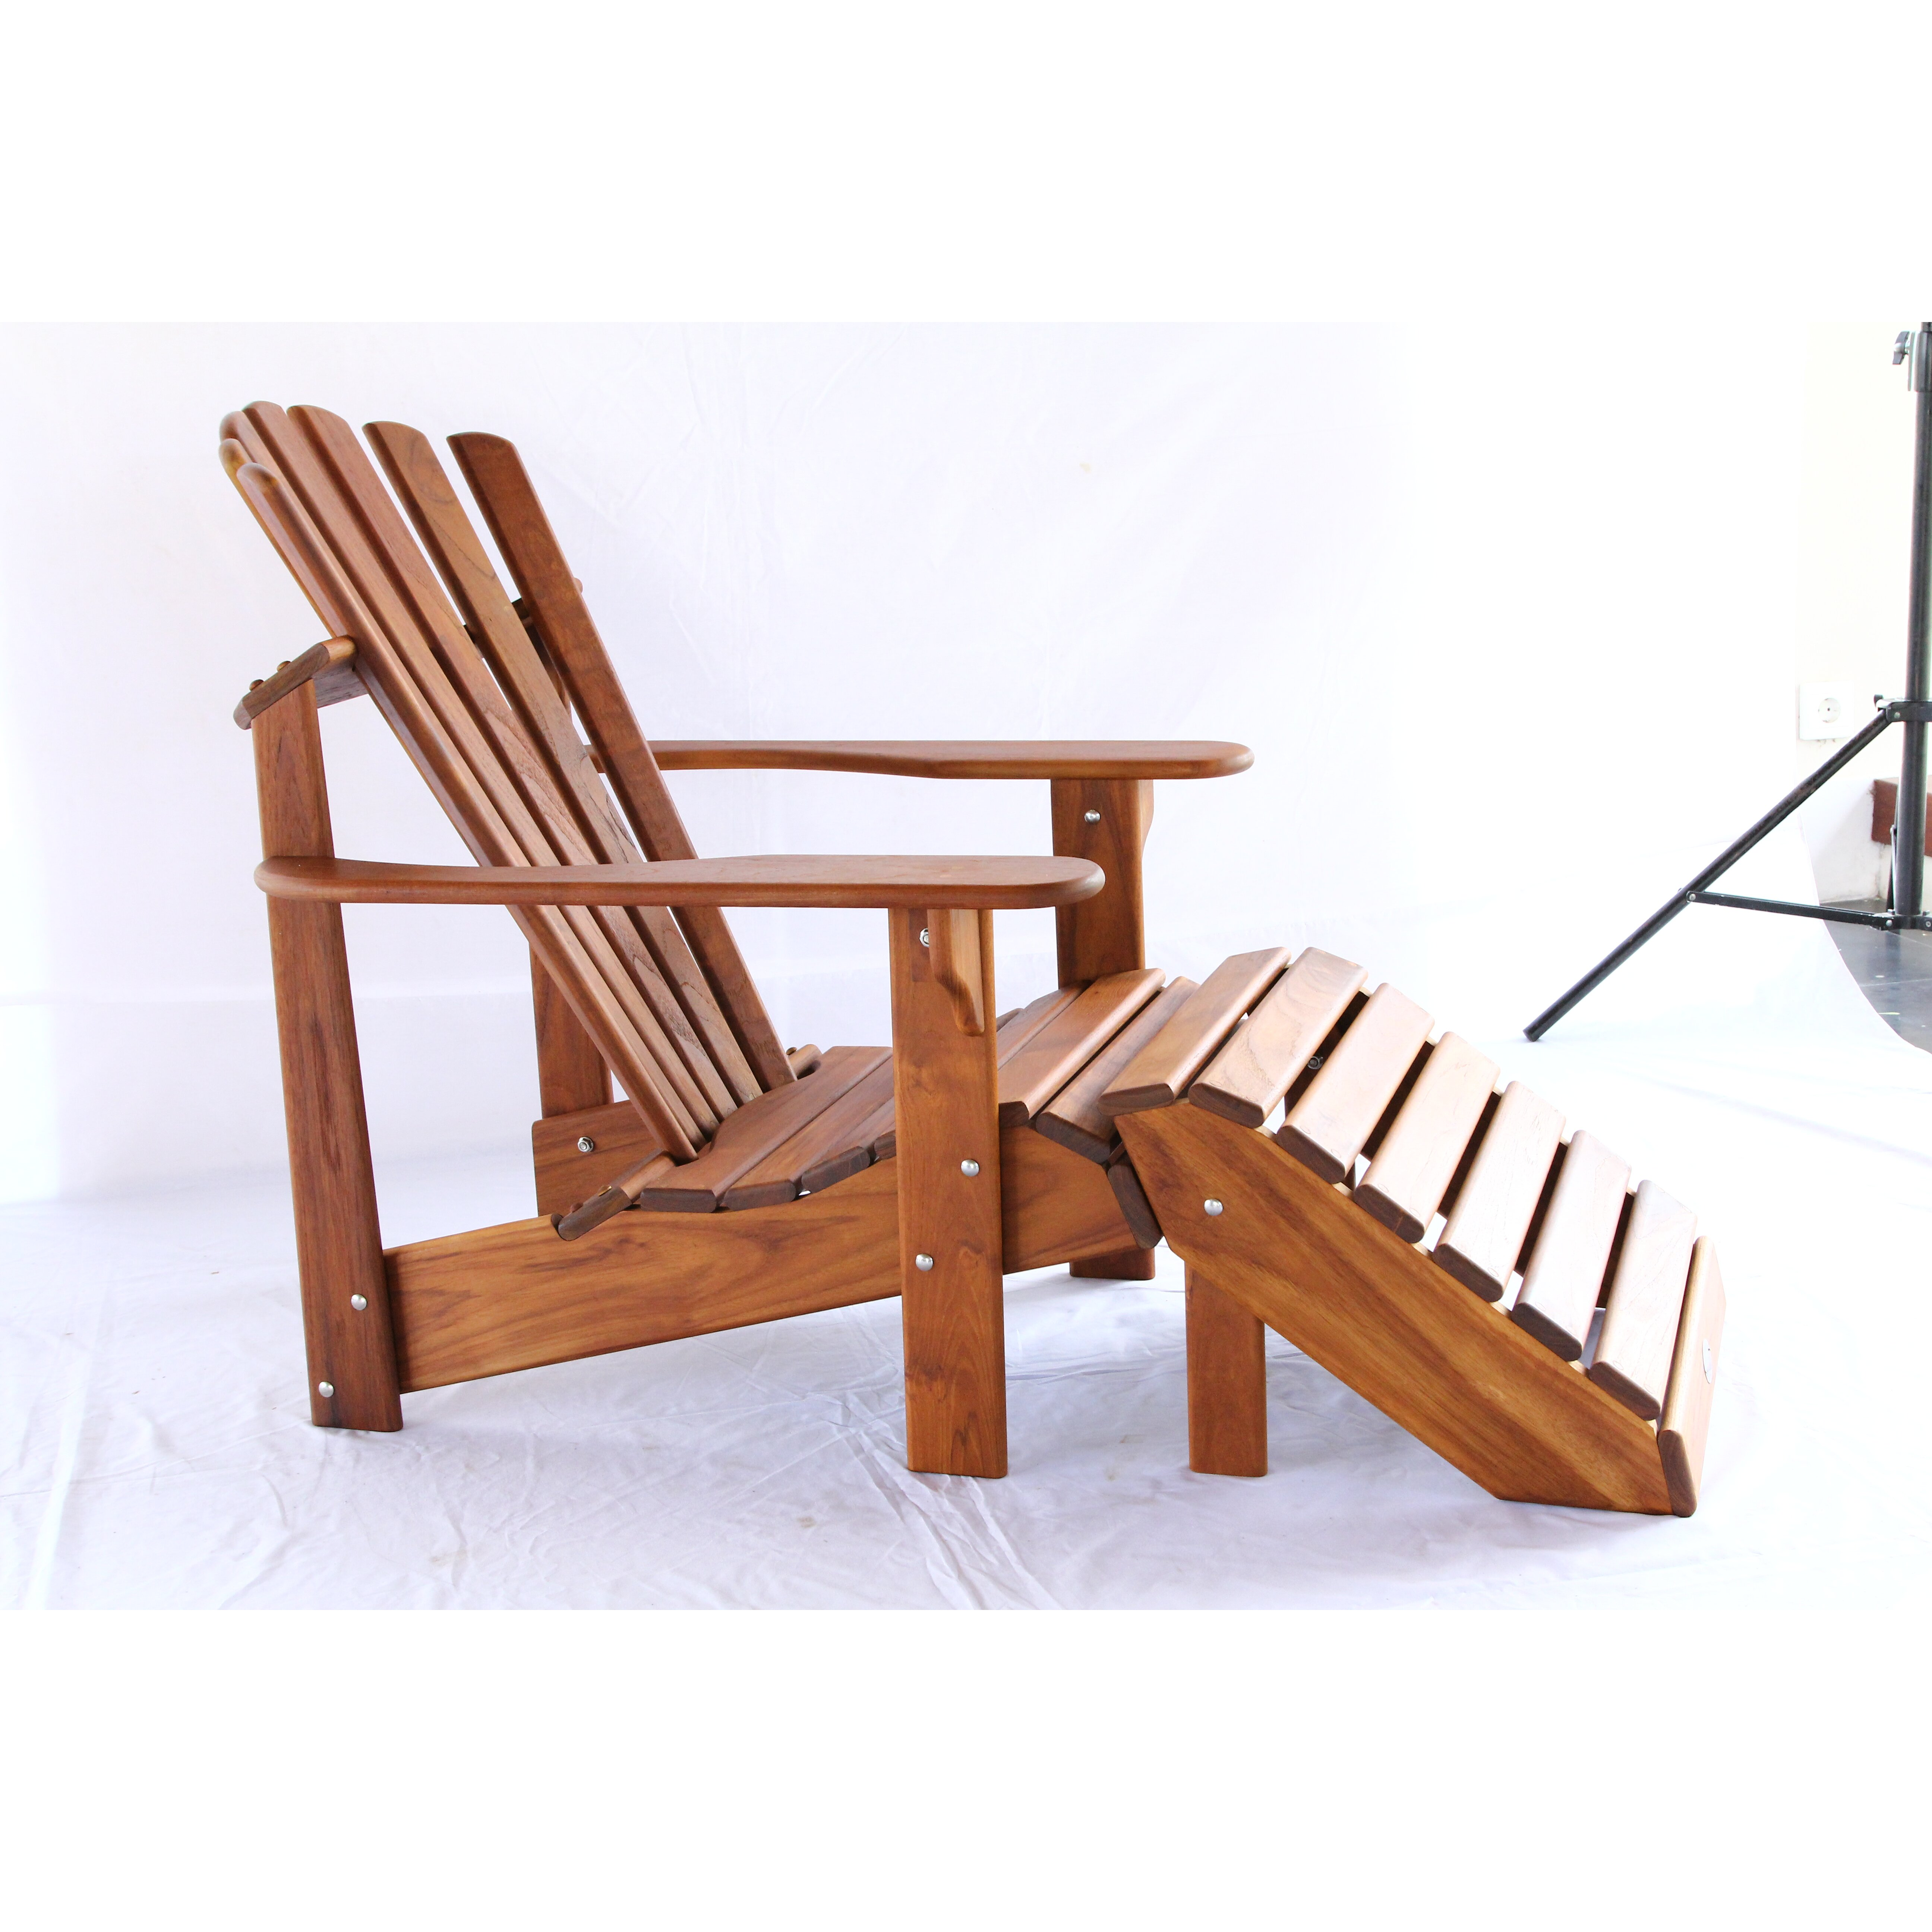 Hyre s Country Signature Teak Adirondack Chair & Reviews